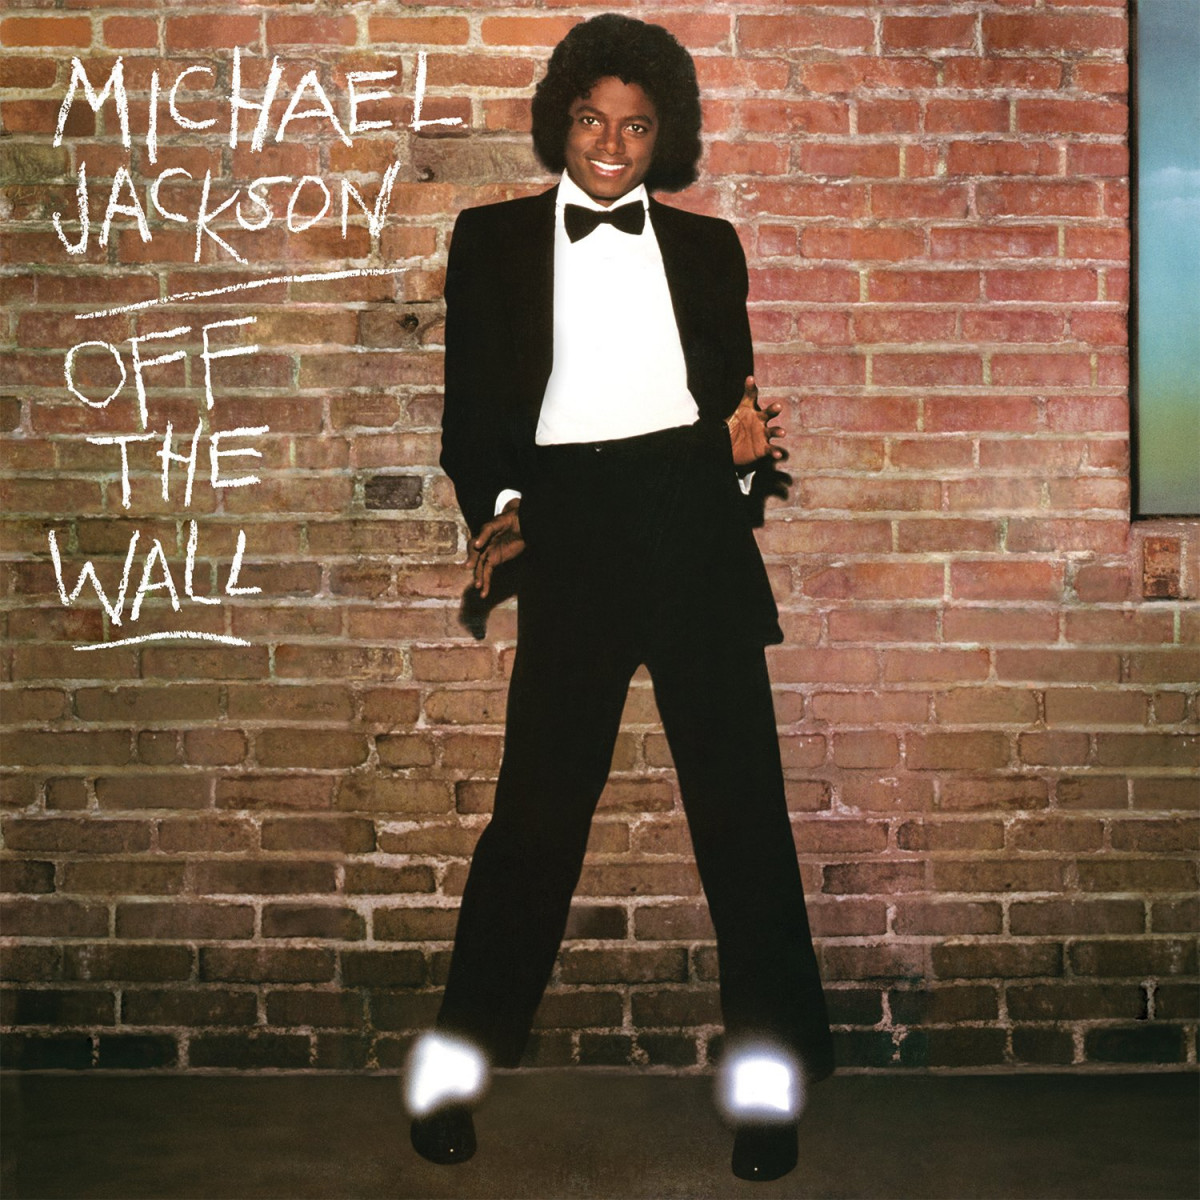 Michael Jackson - «Off the Wall» (1979)